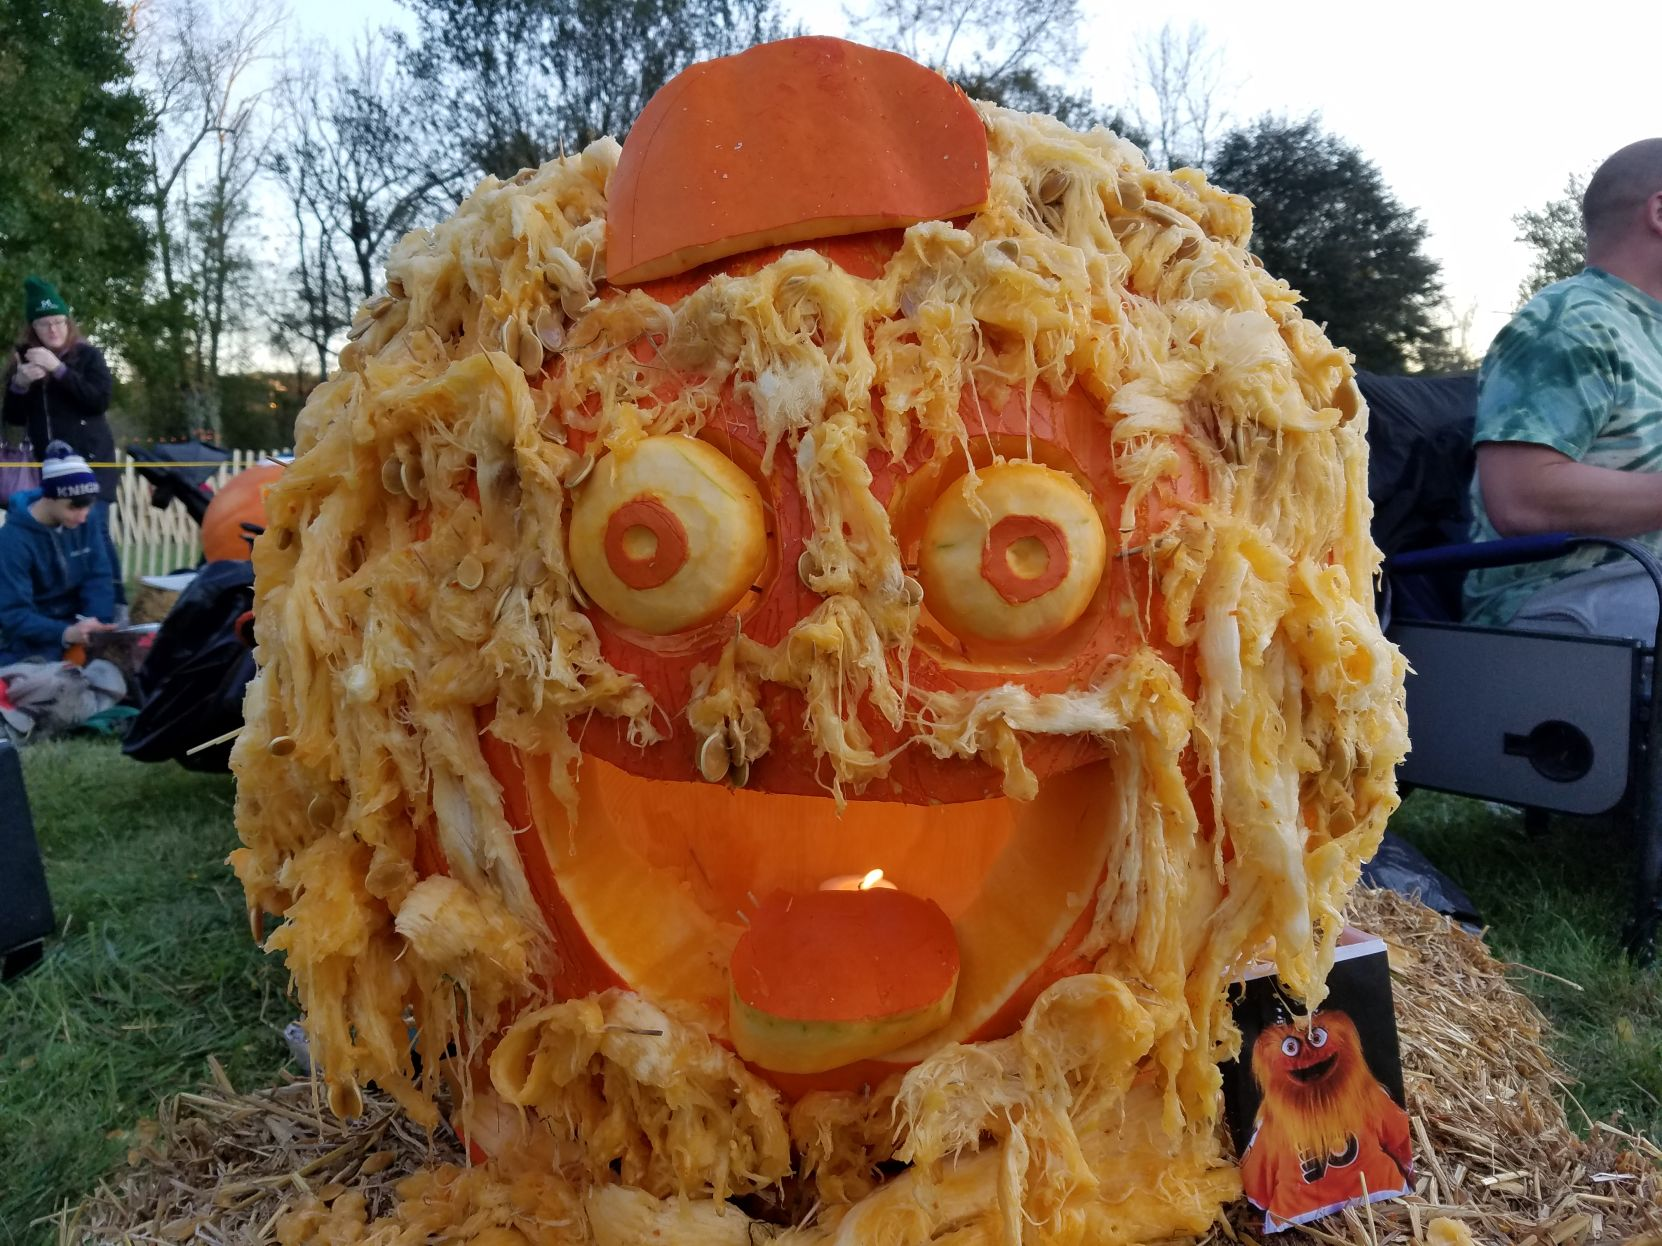 VIDEO | #GrittyLove in effect at the Great Pumpkin Carve in Chadds Ford | WDEL